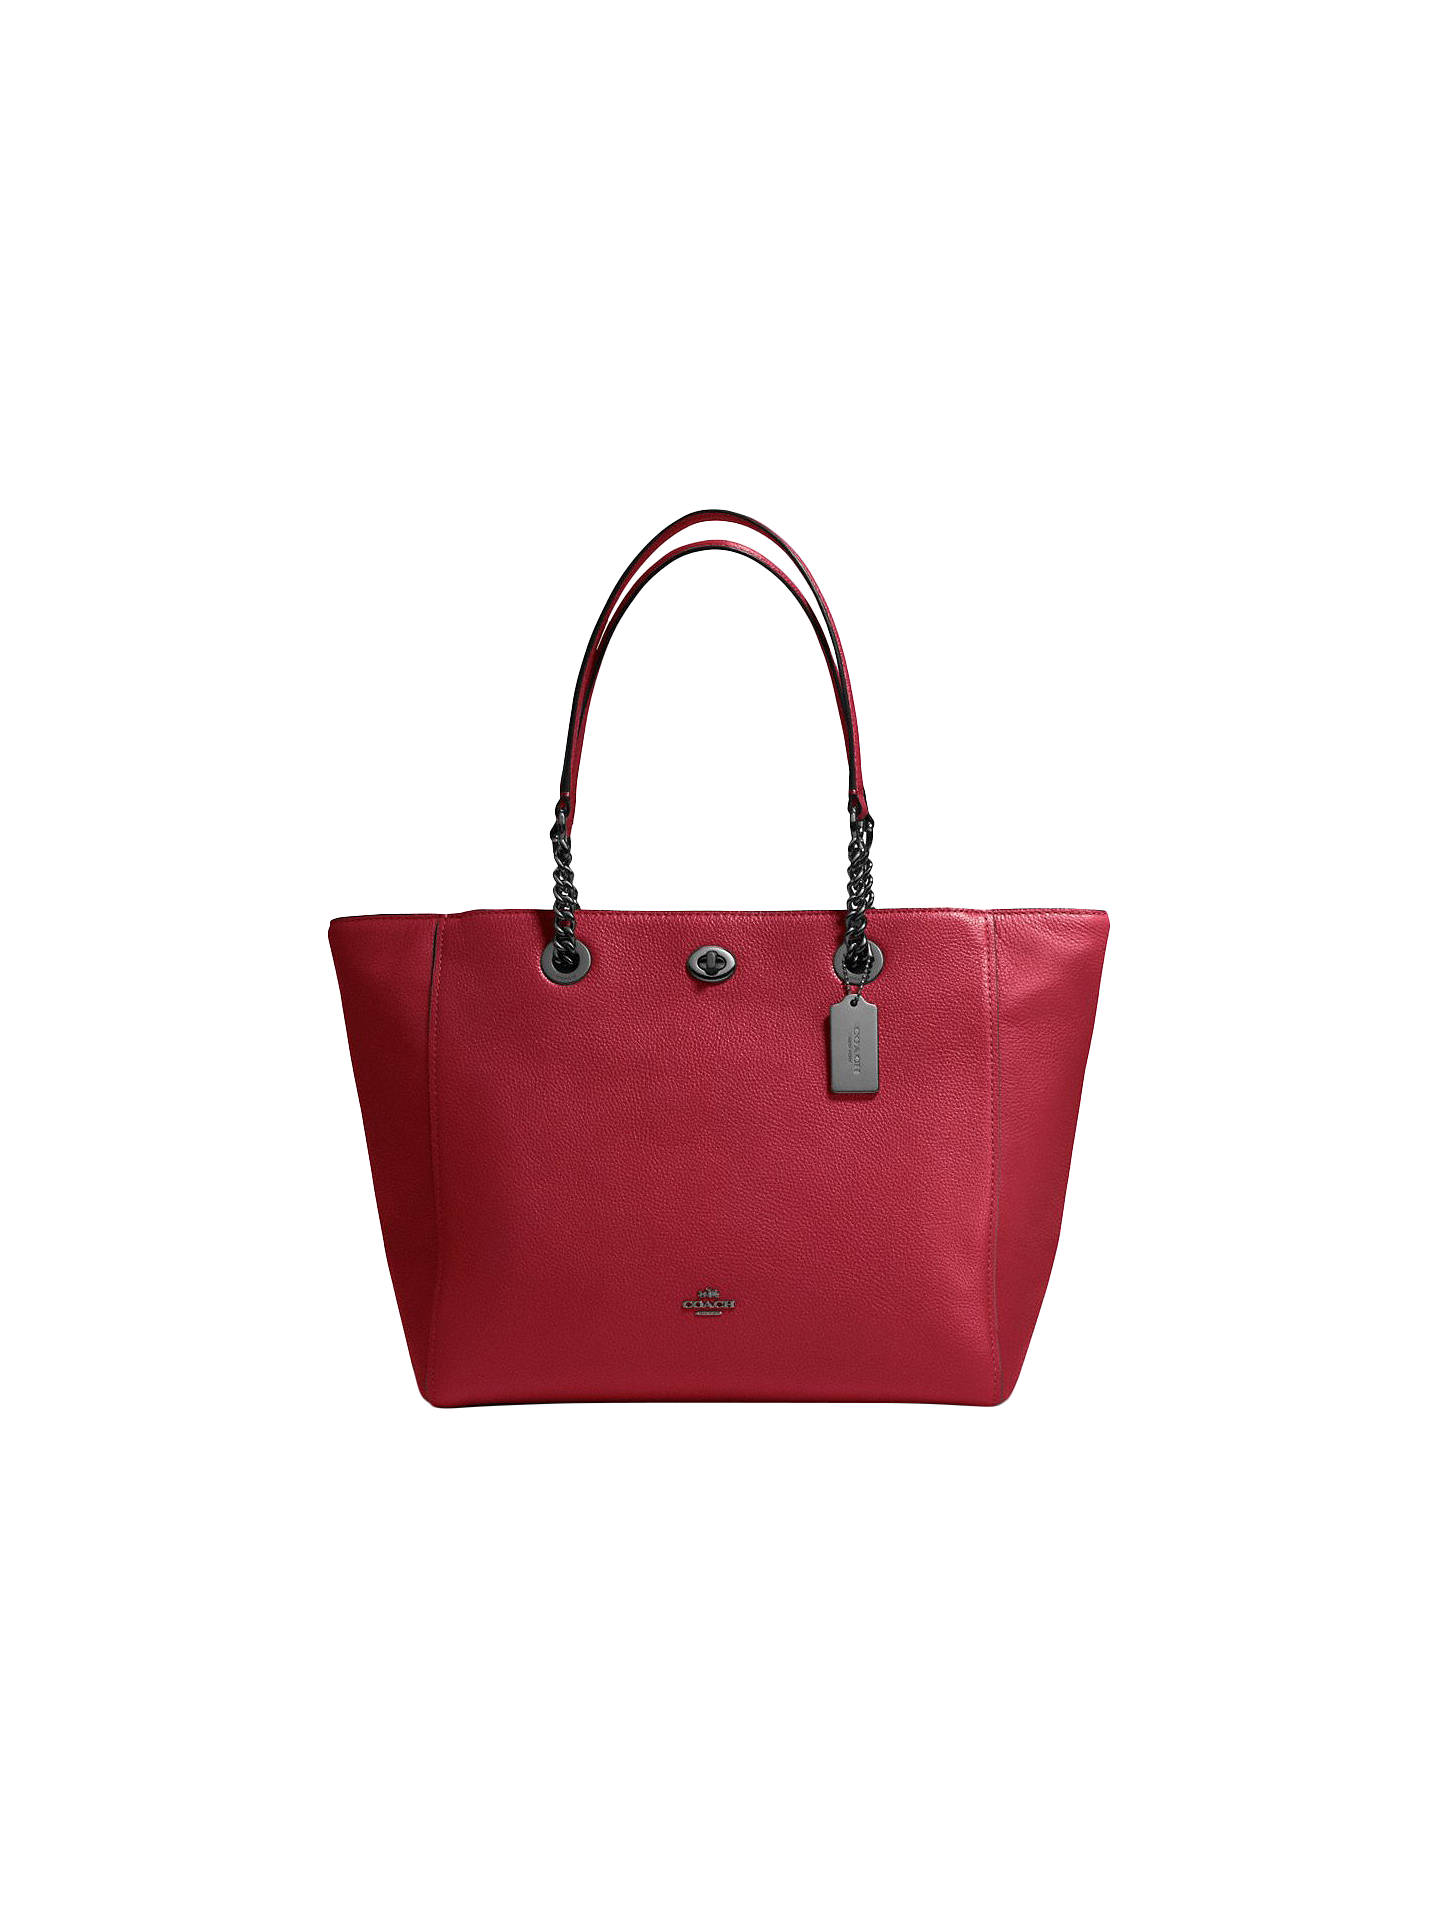 dabc2d8d5 Buy Coach Turnlock Chain Crossgrain Leather Tote Bag, Cherry Online at  johnlewis.com